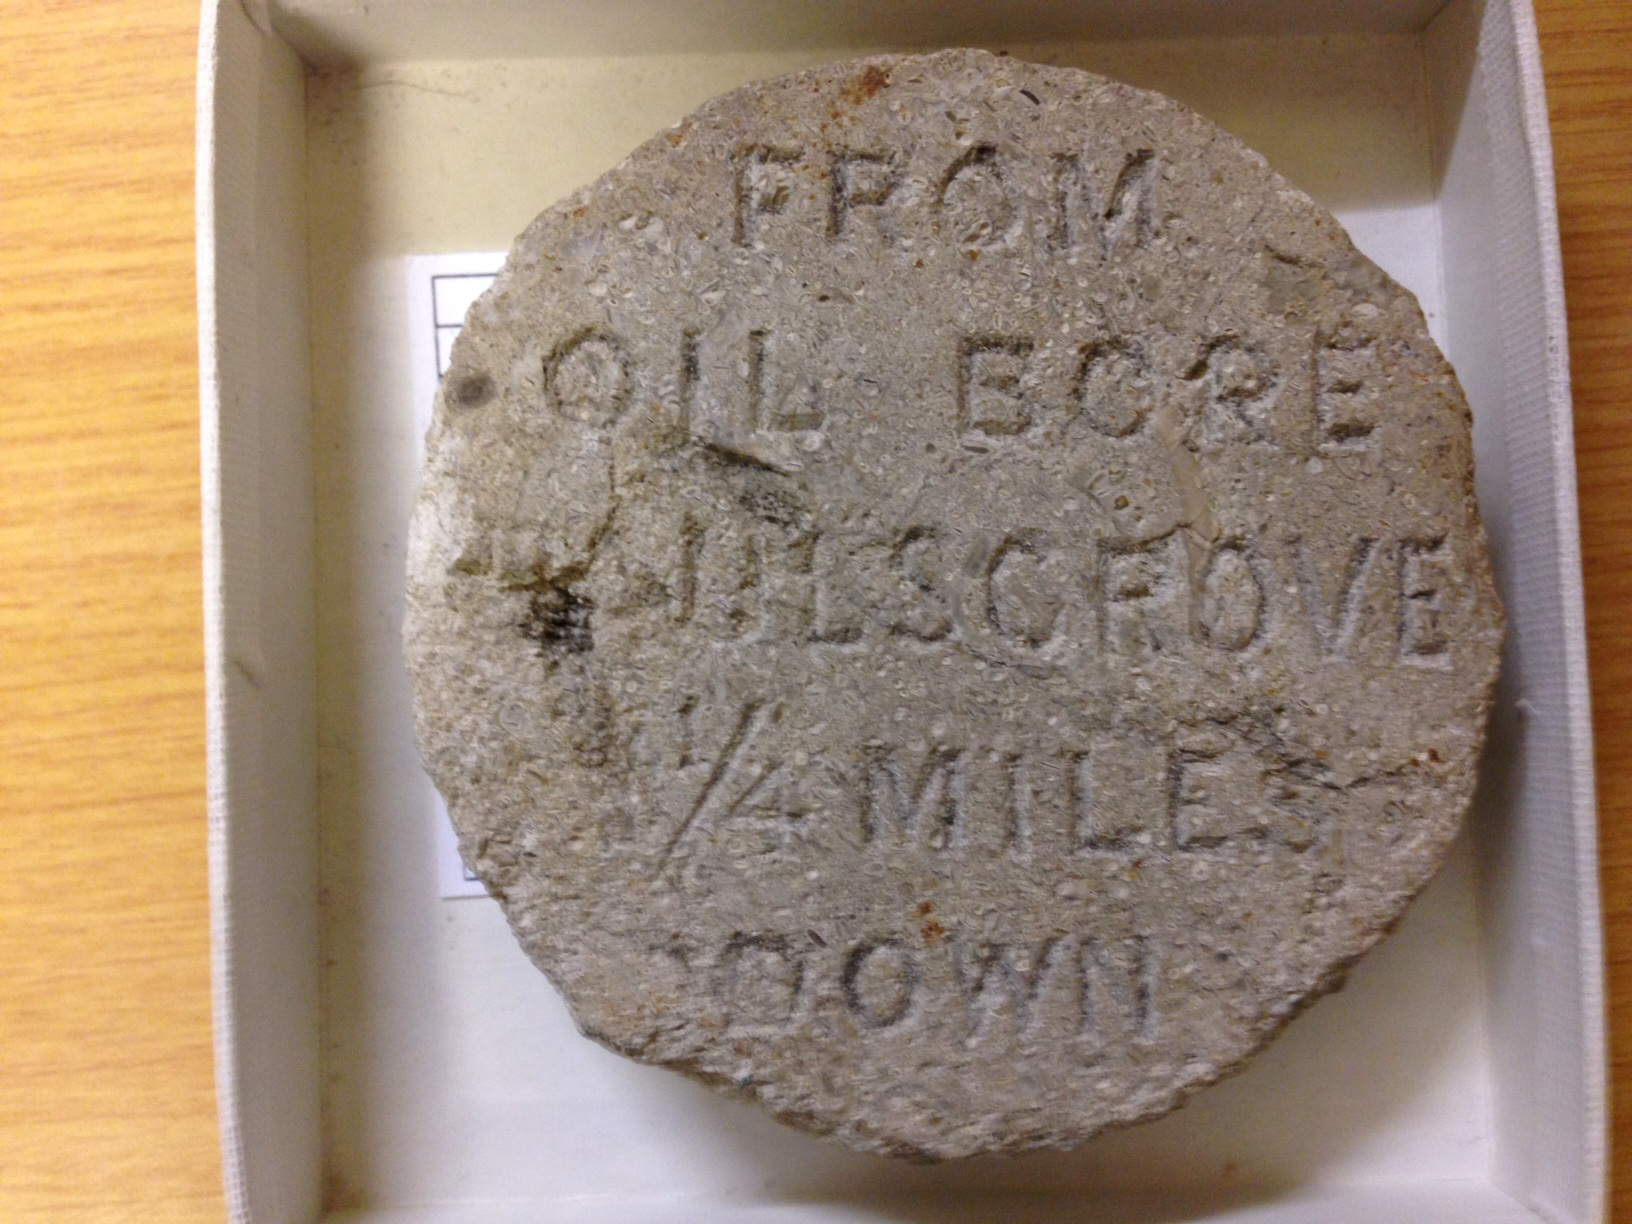 Core sample engraved with details of date and location